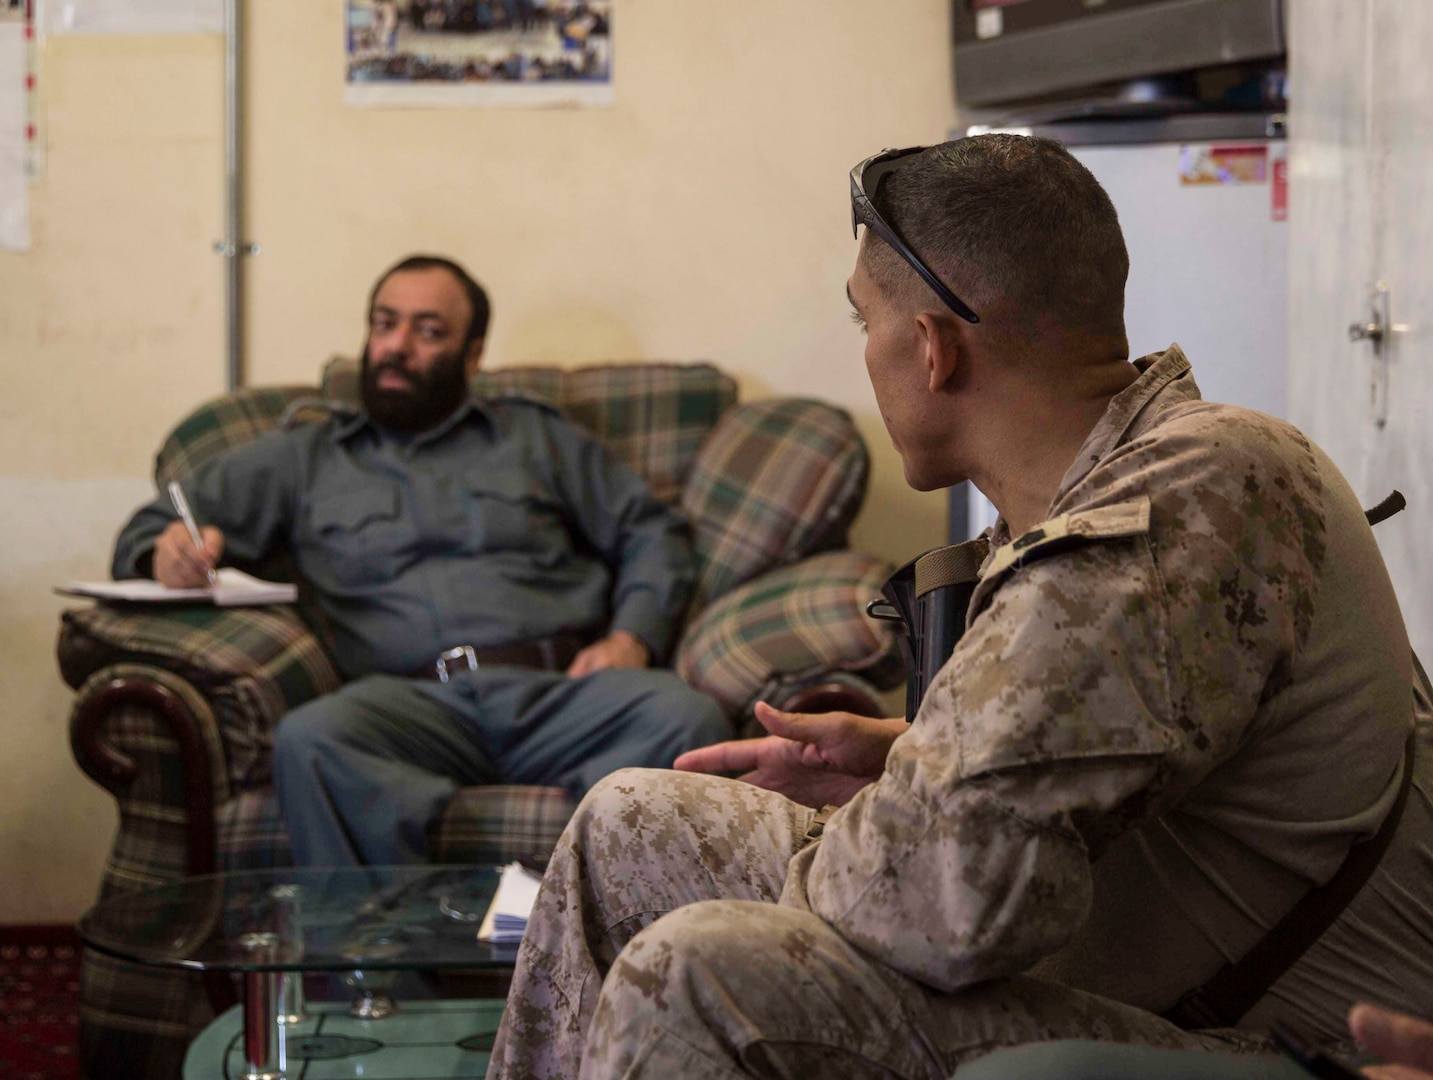 A U.S. Marine advisor with Task Force Southwest speaks with his counterpart during a train, advise and assist mission at the Helmand Provincial Police Headquarters in Lashkar Gah, Afghanistan, July 9, 2017. This mission provided an opportunity for advisors to meet with their counterparts, review the security posture at the PHQ and ensure that Afghan National Defense and Security Forces have an effective defense of Lashkar Gah. (U.S. Marine Corps photo by Sgt. Justin T. Updegraff)